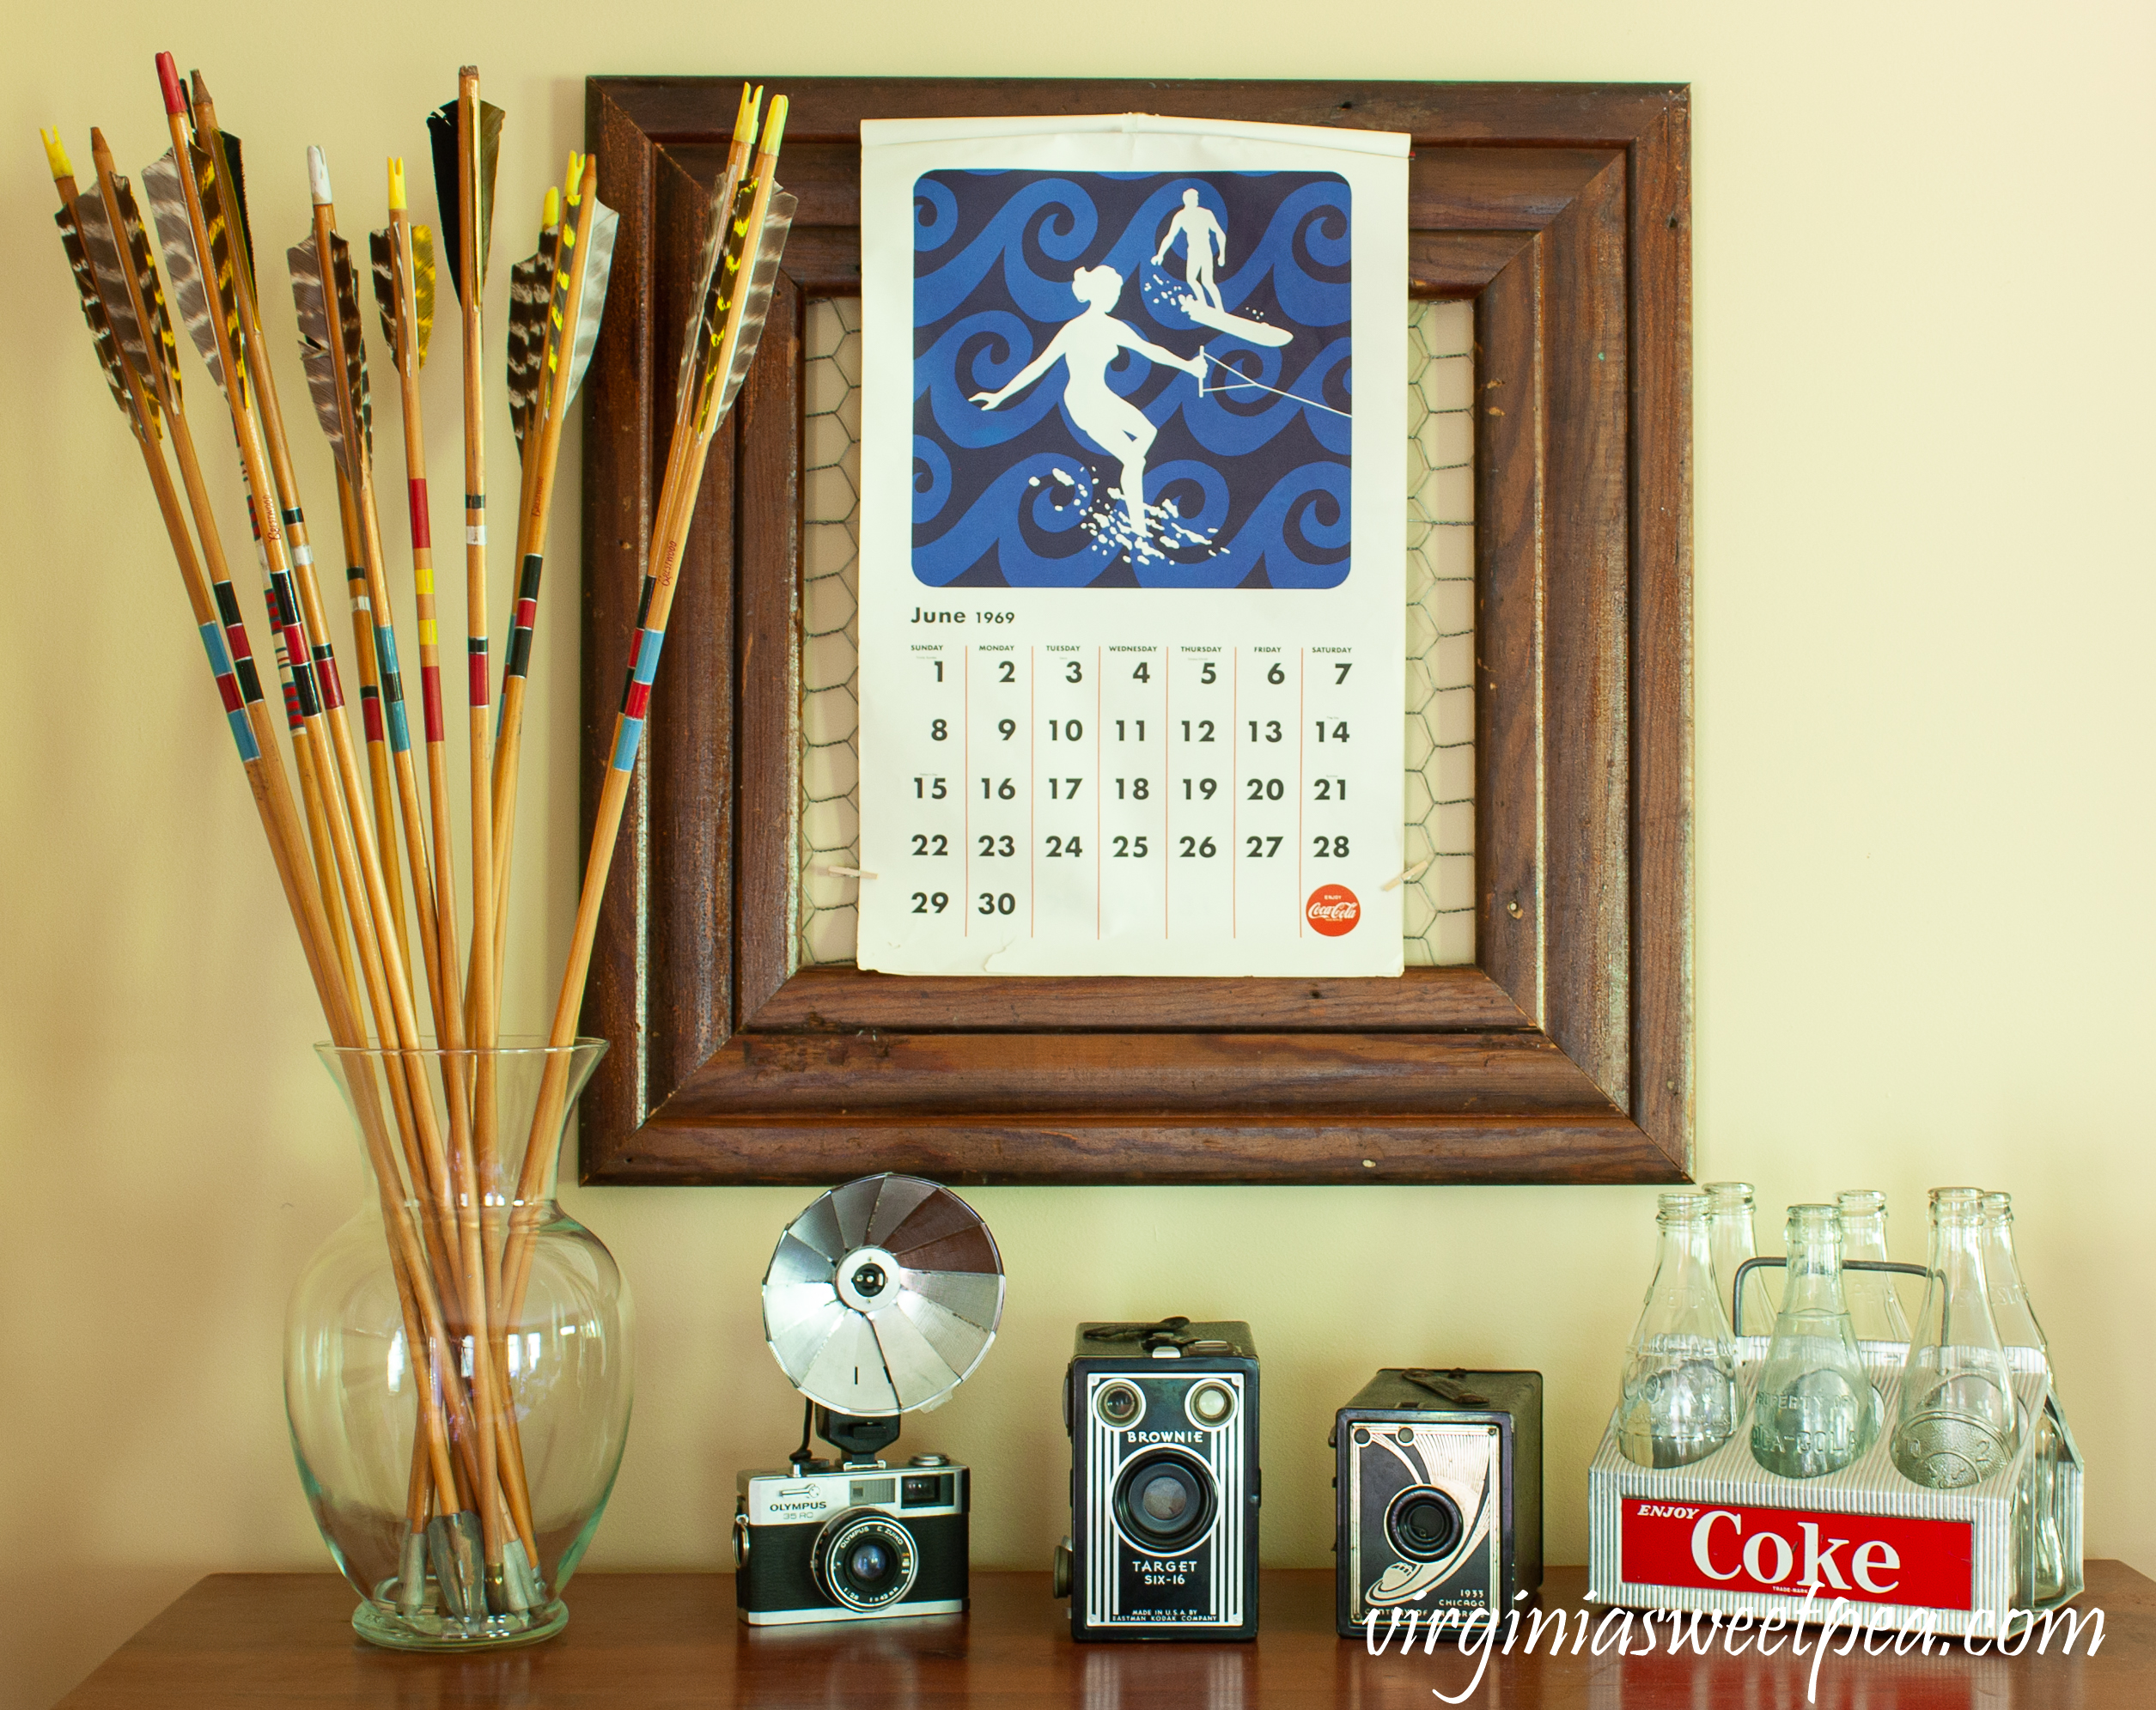 Summer Decorating with Vintage - Summer decor including vintage arrows, vintage cameras, a vintage Coke caddy, and a June Coca-Cola 1969 calendar page.